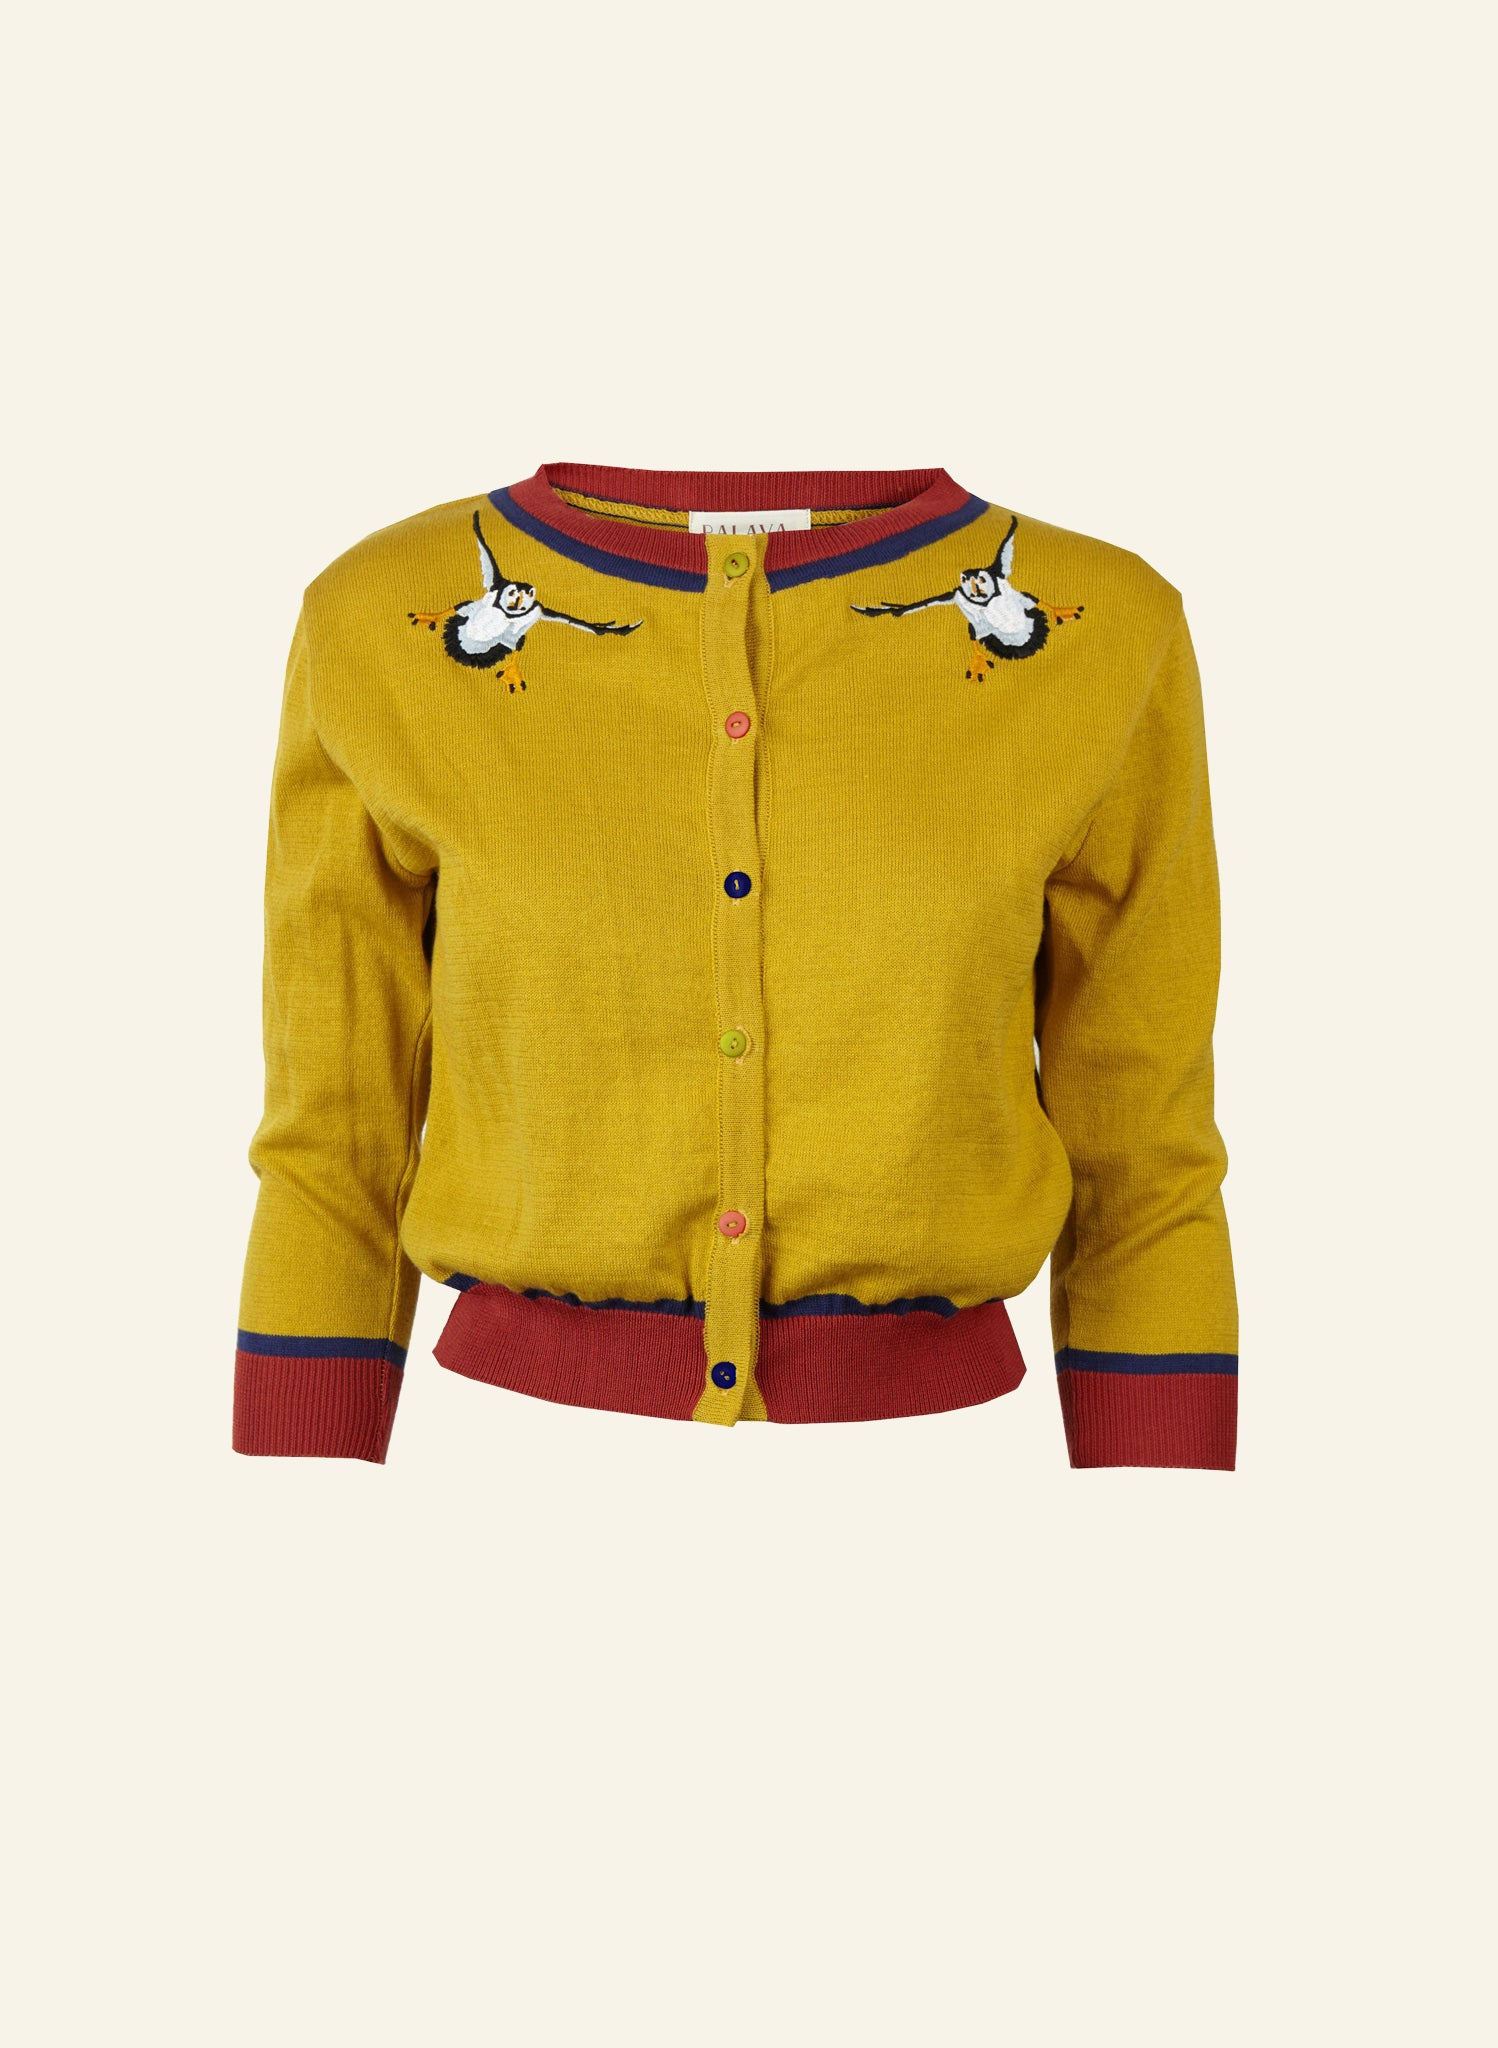 Vera - Mustard Puffin - Organic Cotton Cardigan